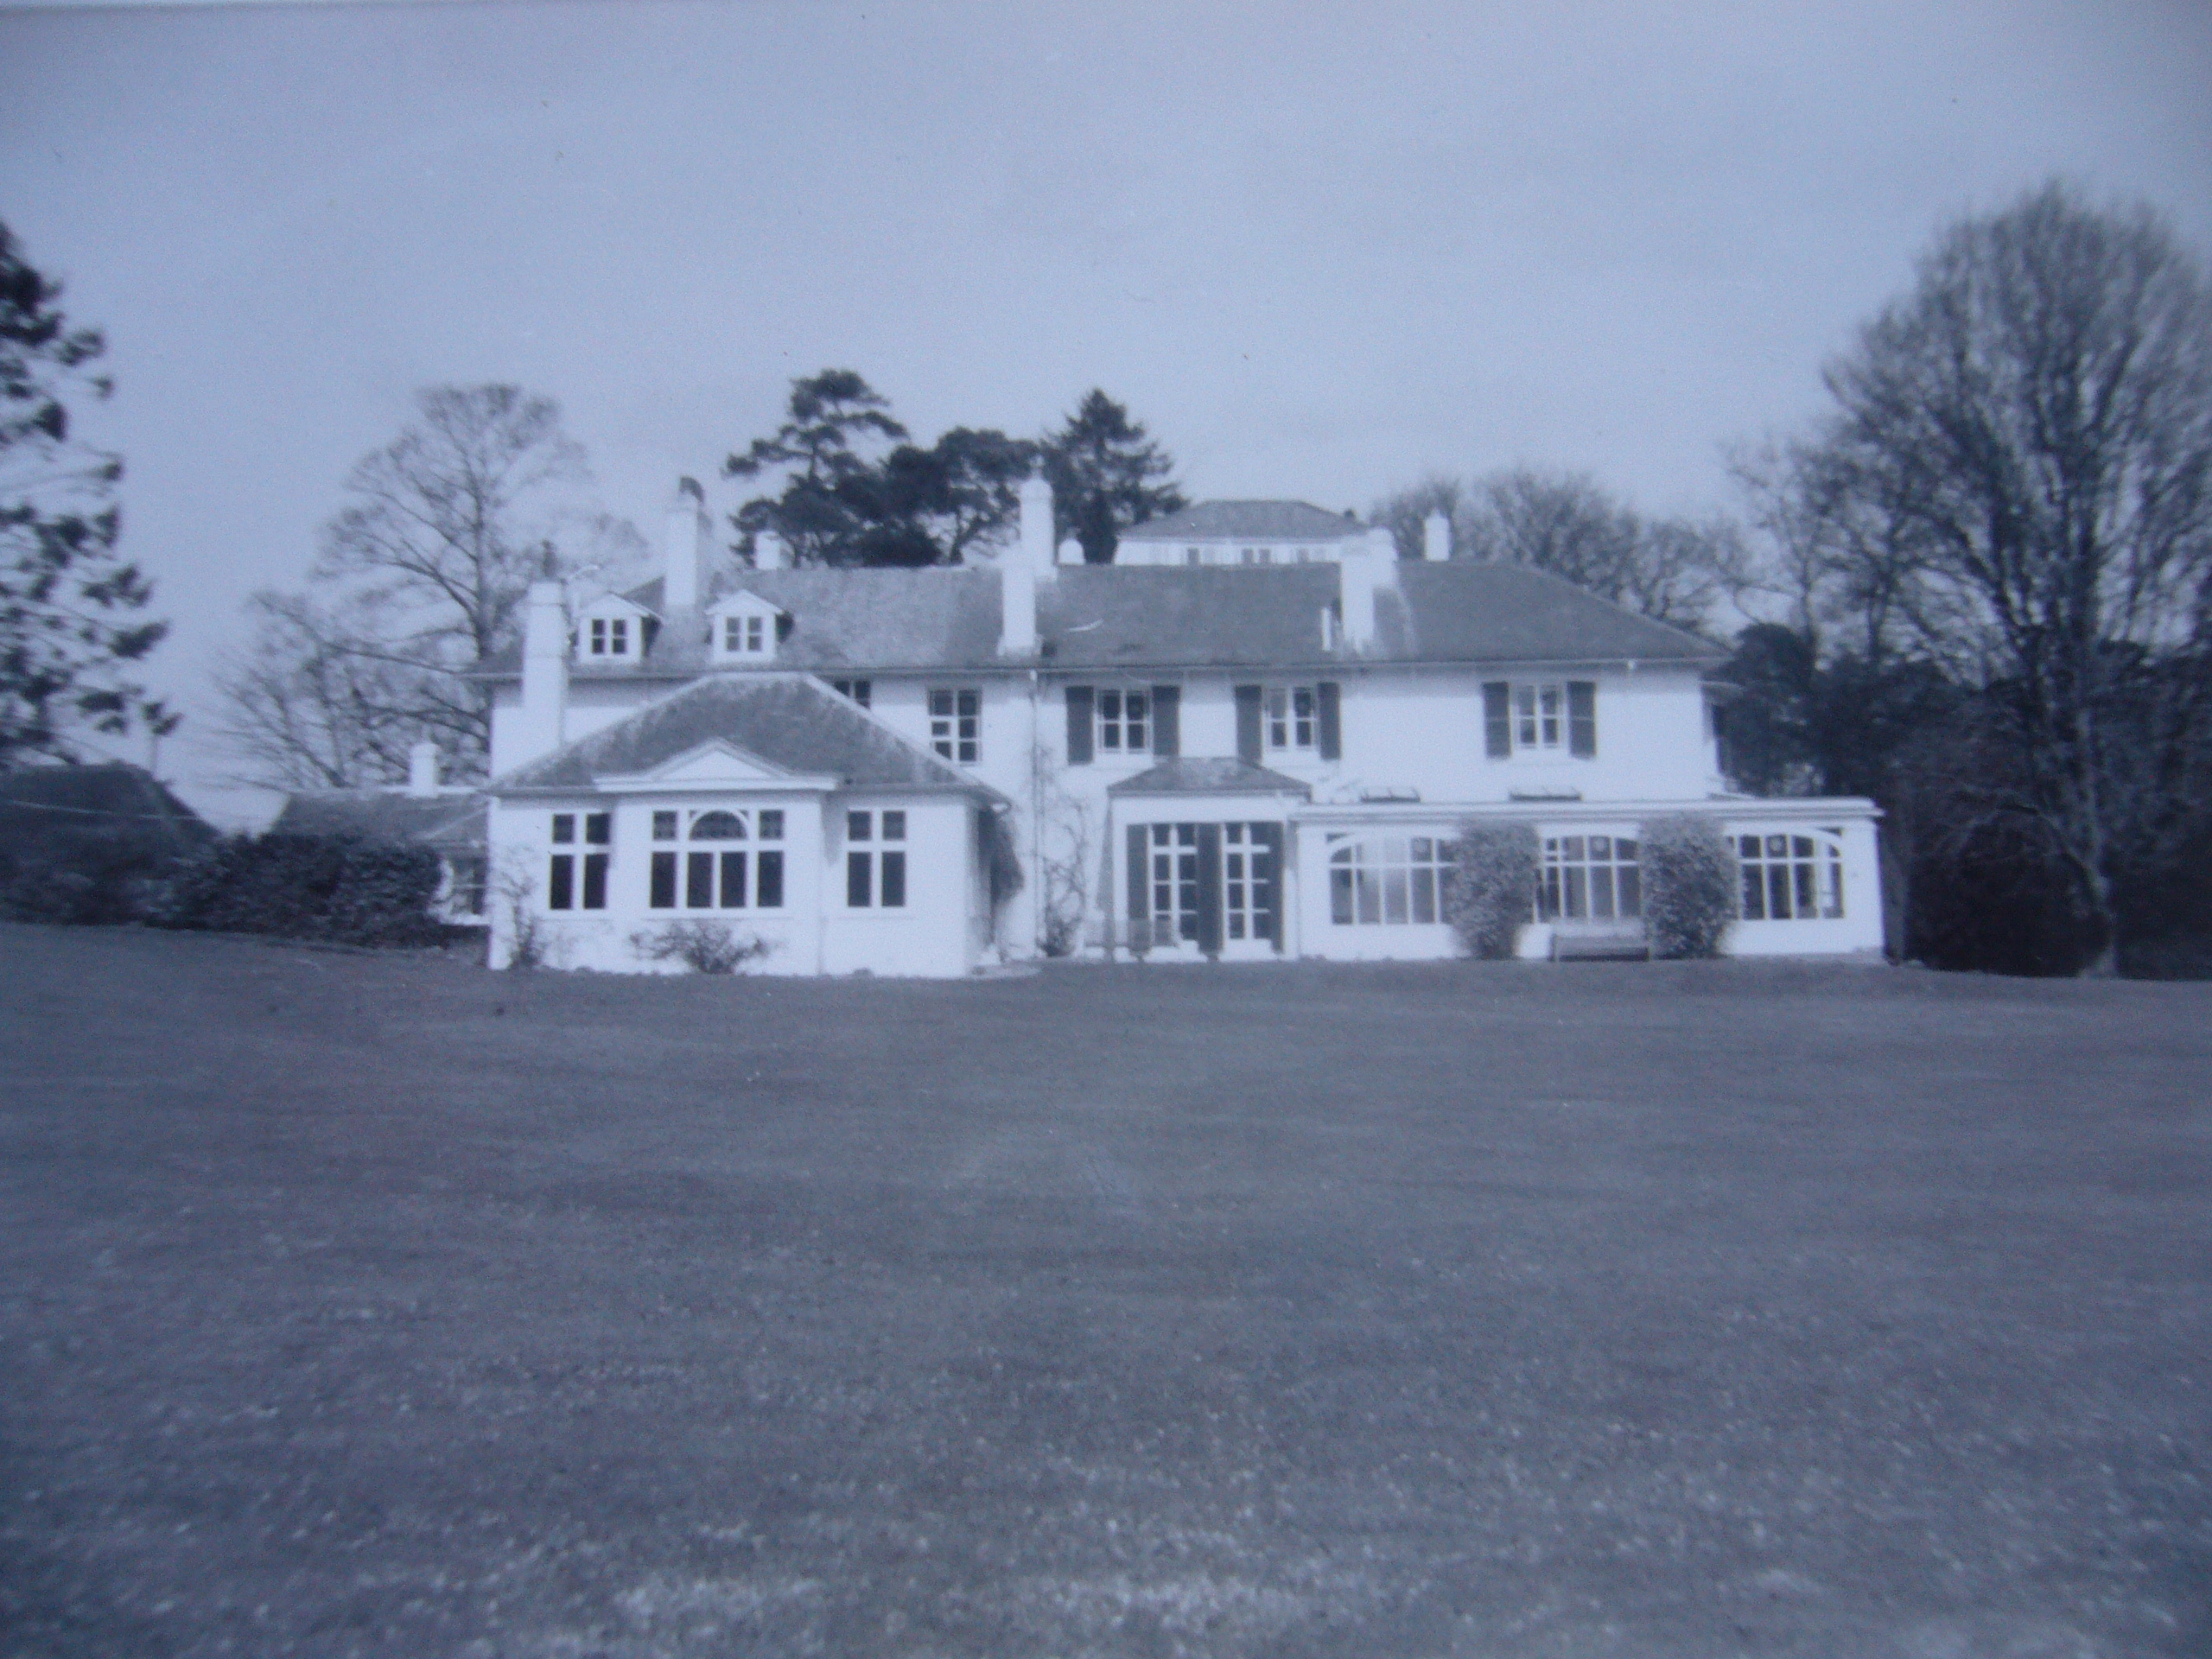 Black and white photograph of the exterior of Broadfield House - large white house with grass in front and trees to the sides and behind.